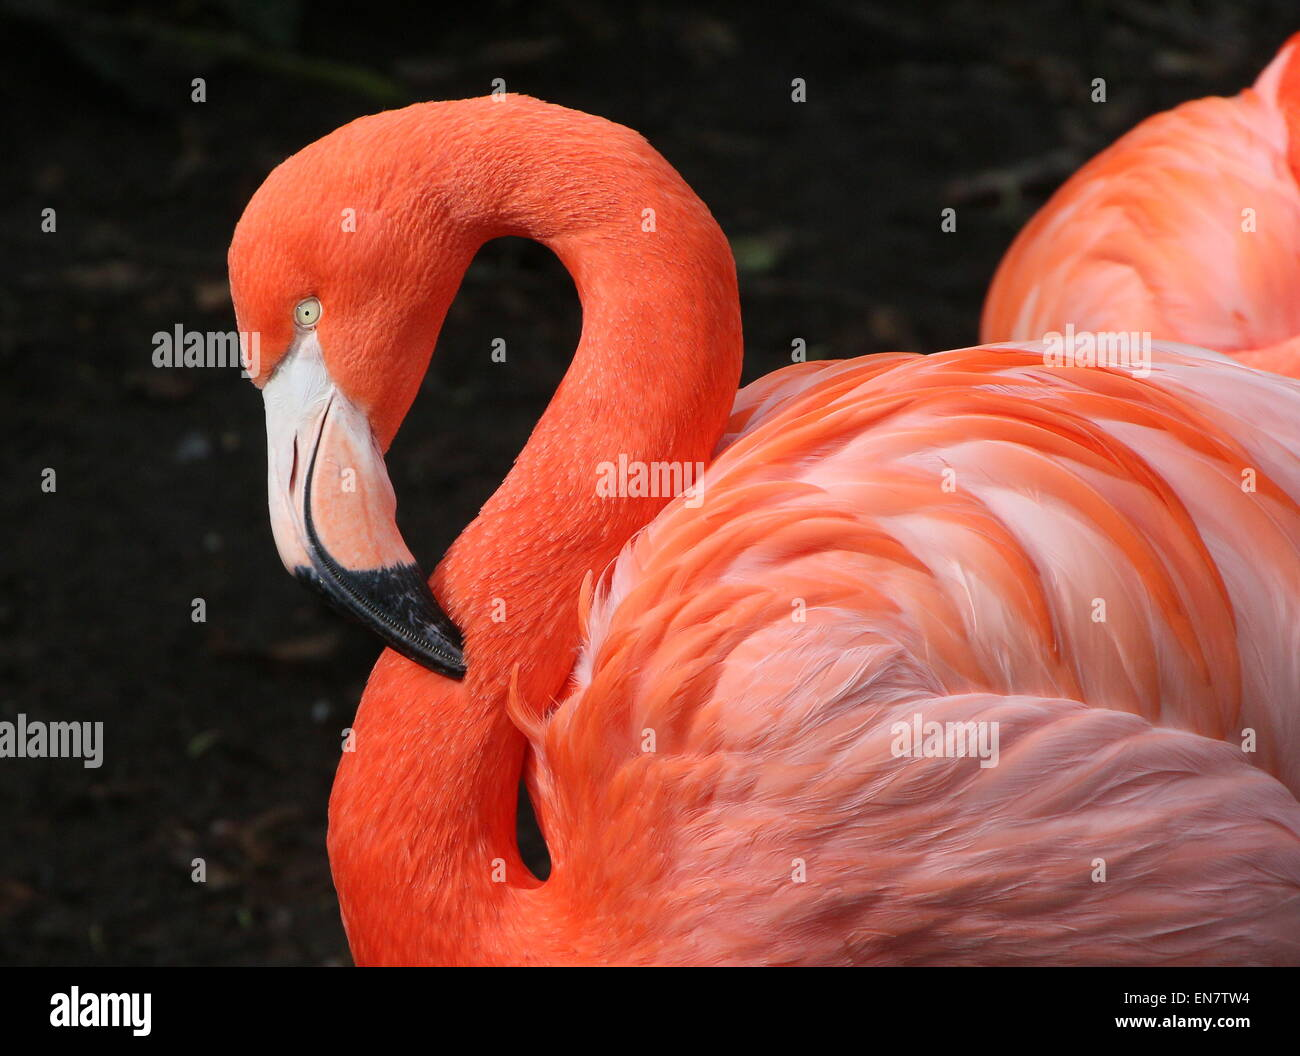 American or Caribbean flamingo ( Phoenicopterus ruber), closeup of the head and body - Stock Image